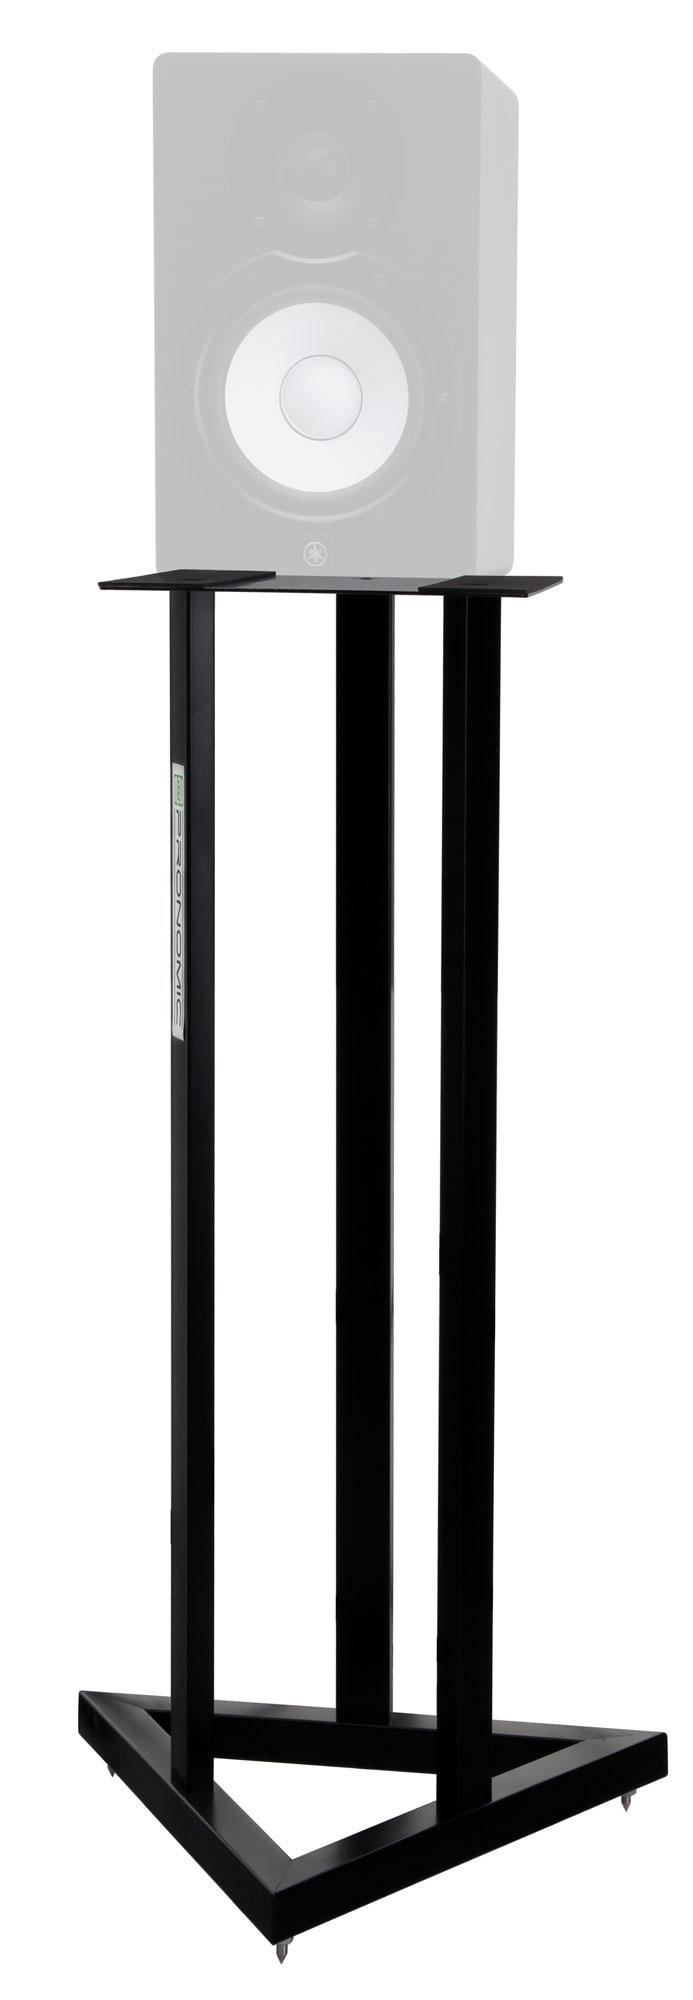 Pronomic scs 20 speaker stand for studio monitor pair of for Montage des stands